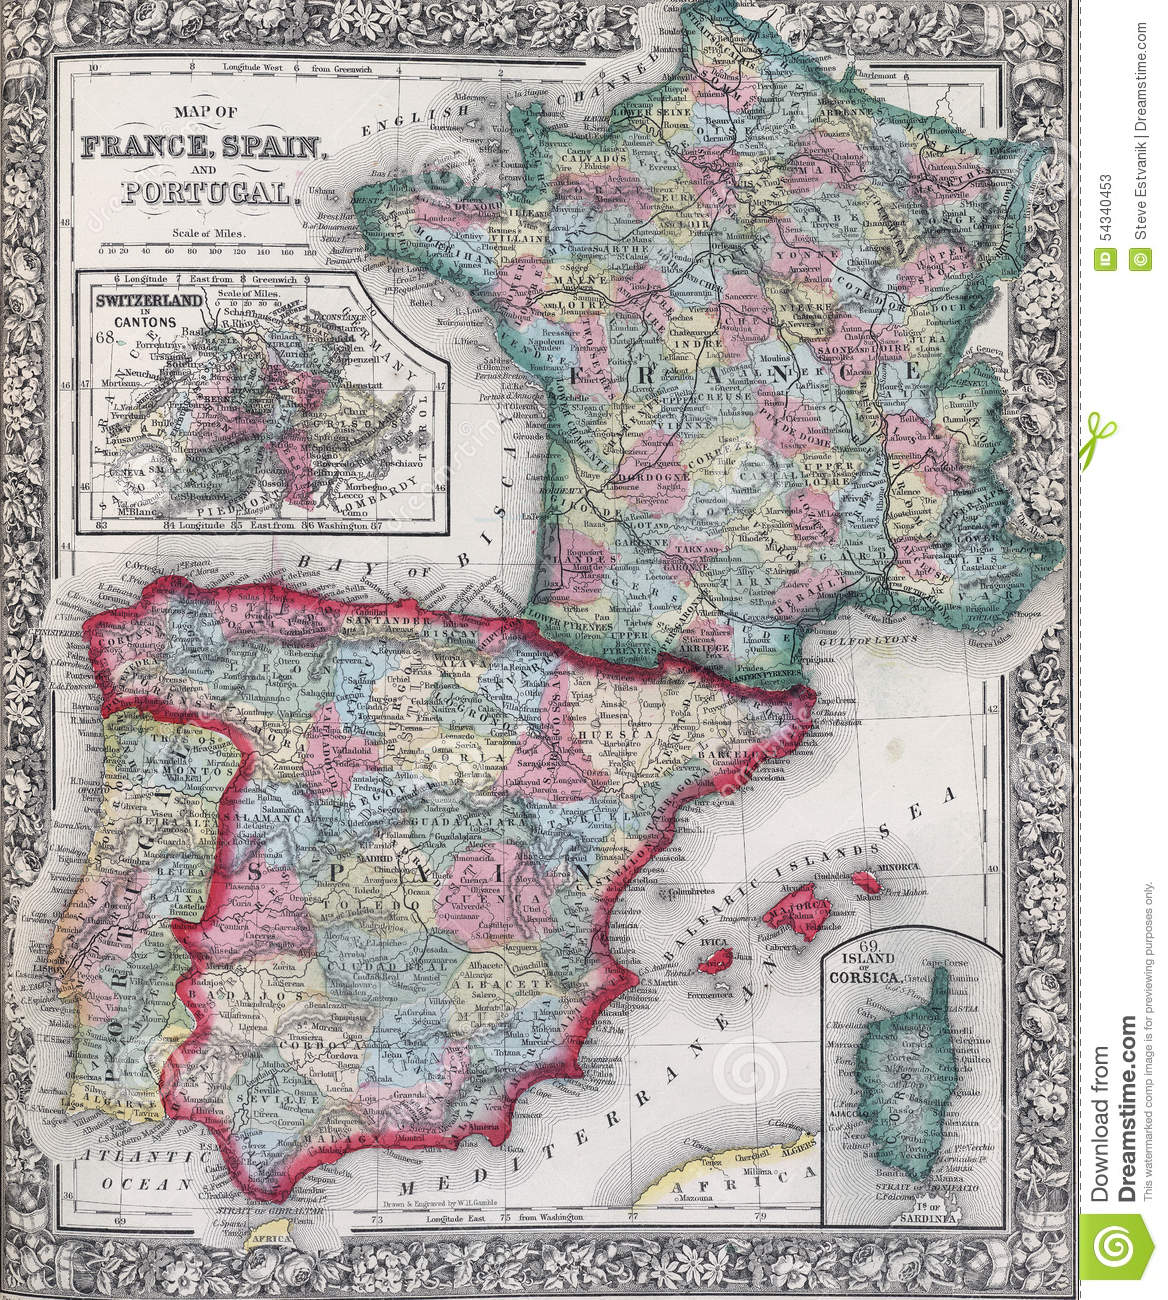 Map Of Spain And Portugal And France.Antique Map Of Spain France And Portugal Stock Image Image Of